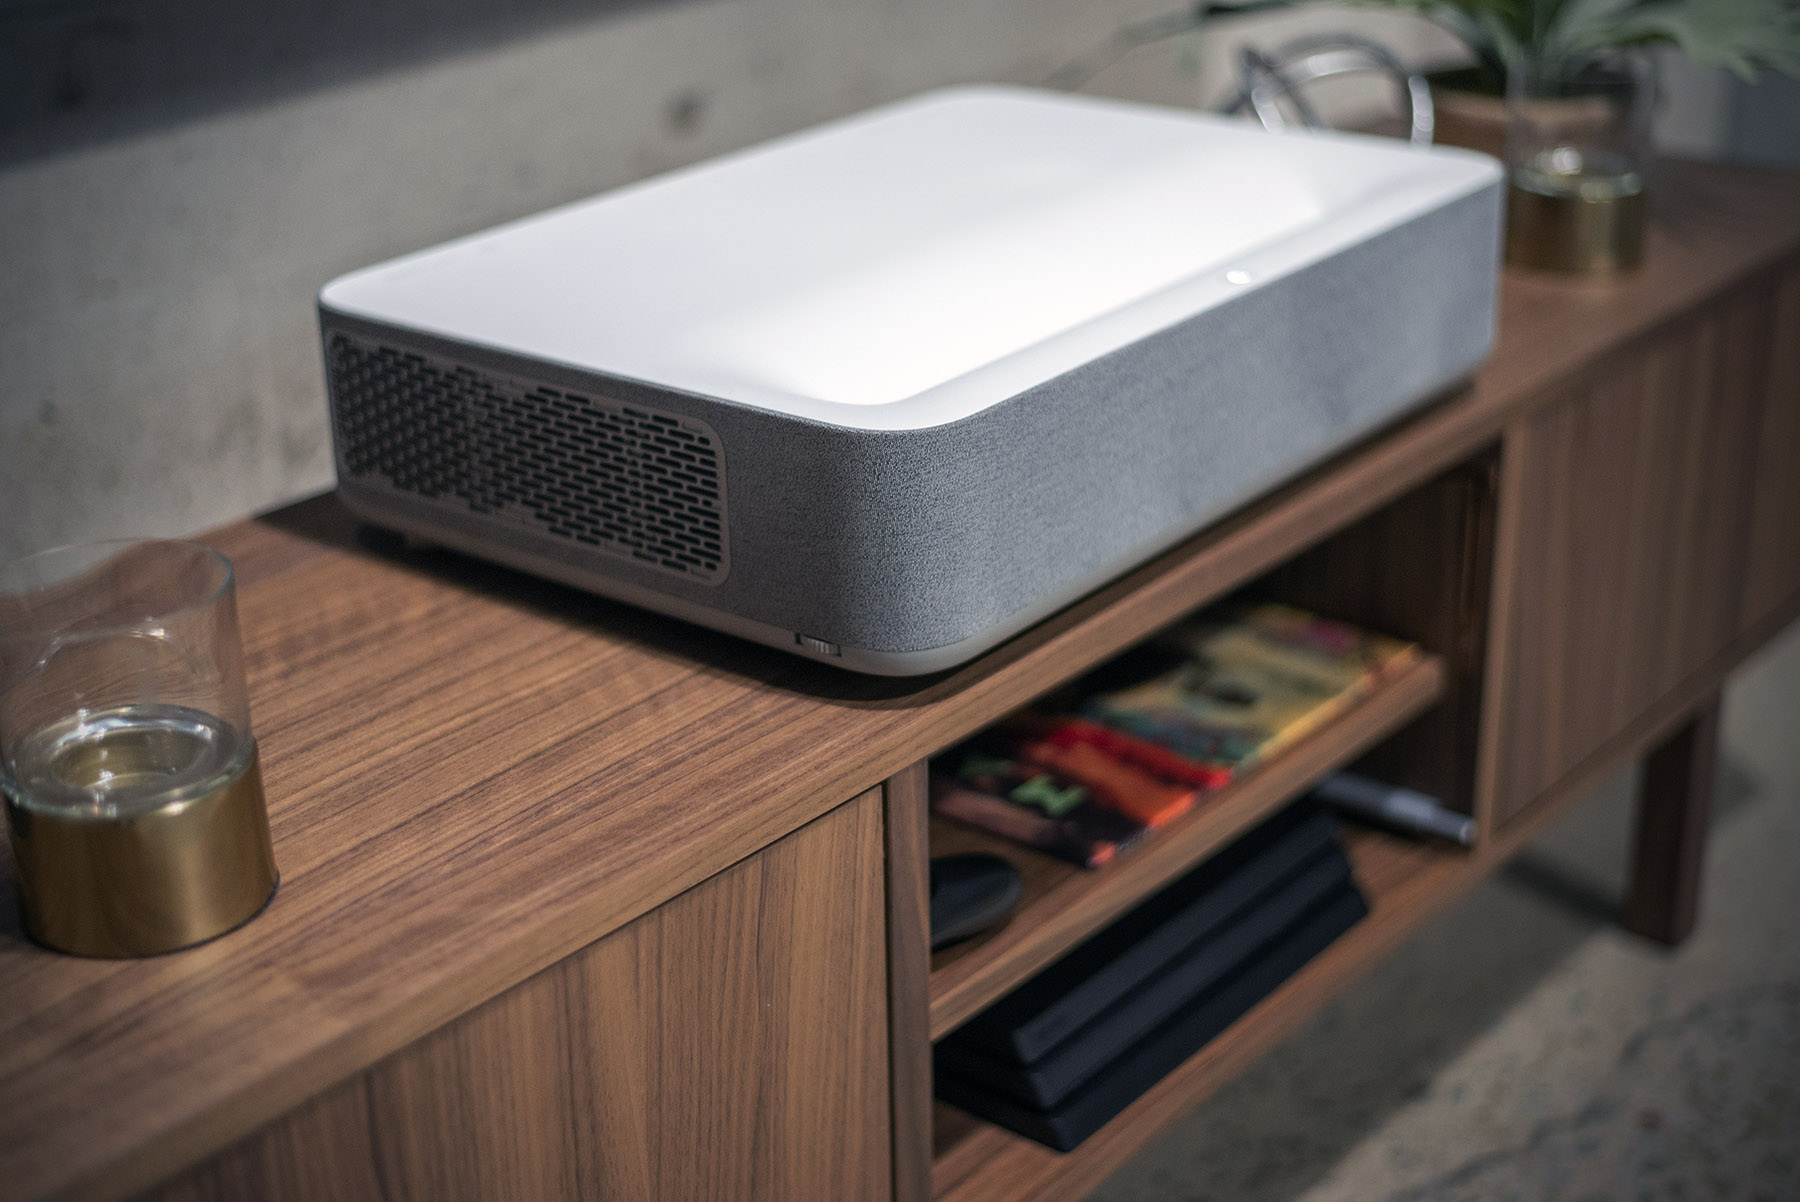 Vava's 4K Ultra Short Throw Laser Projector is stunning and